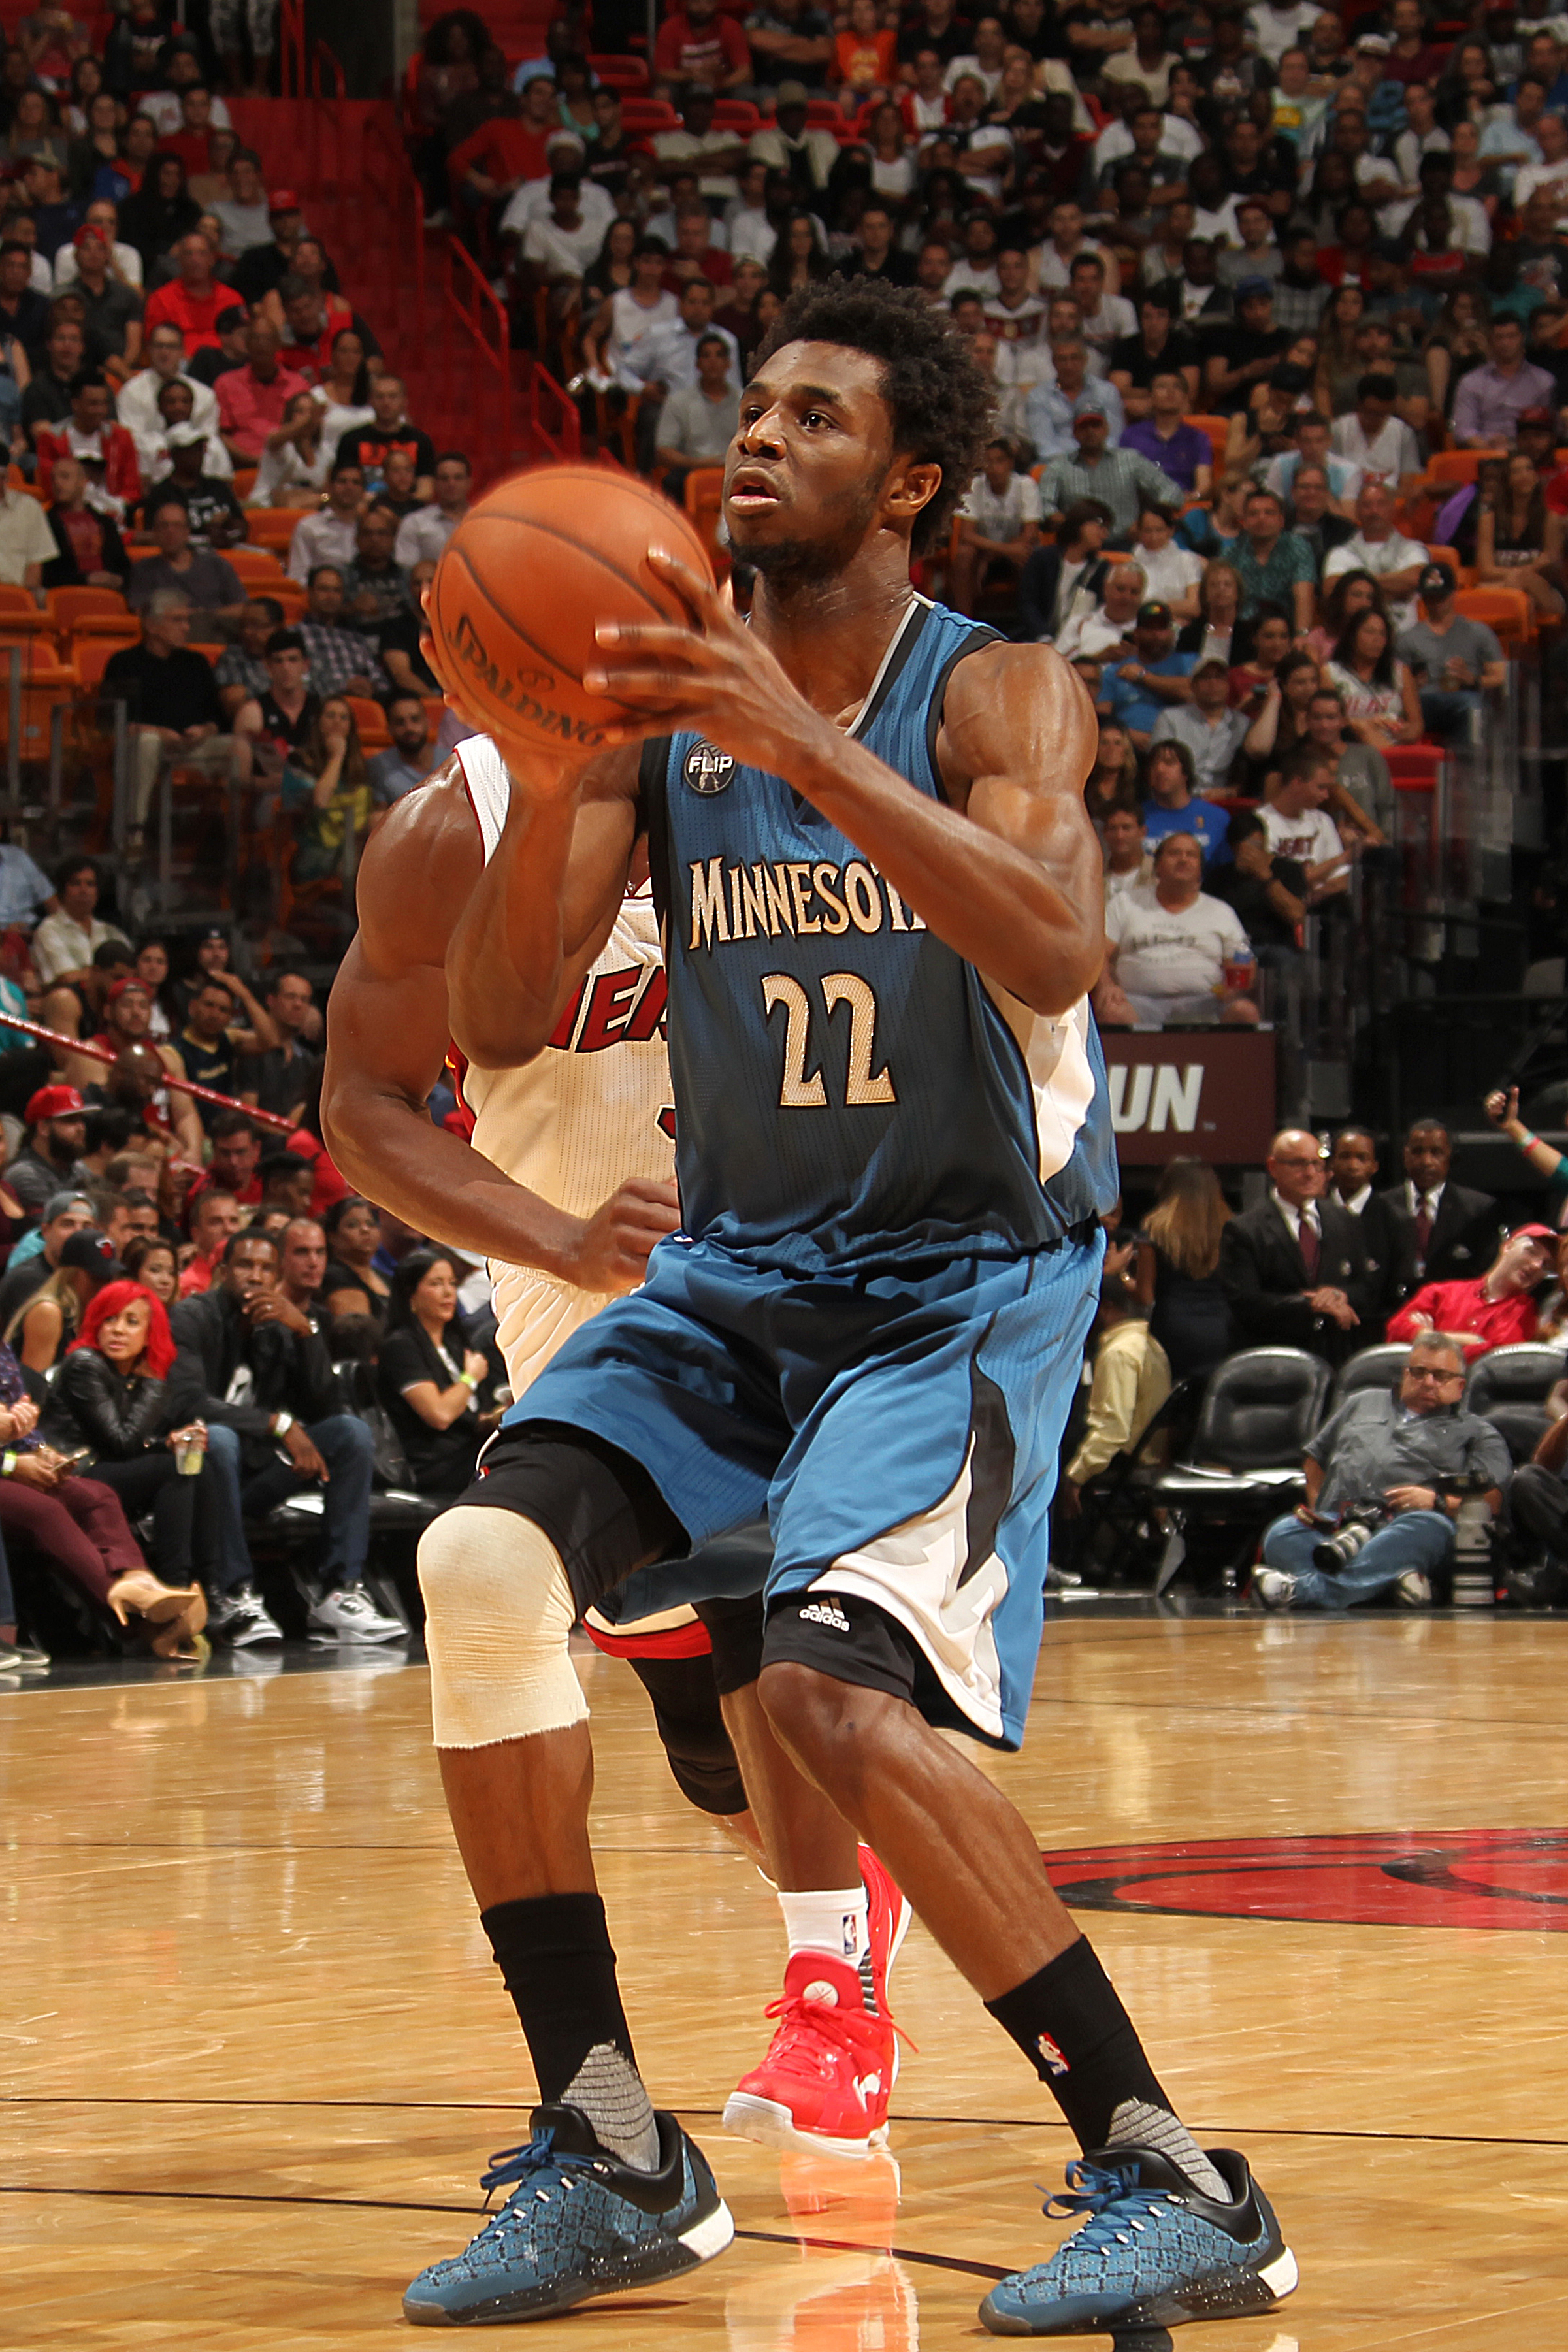 MIAMI, FL - NOVEMBER 17:  Andrew Wiggins #22 of the Minnesota Timberwolves shoots the ball against the Miami Heat on November 17, 2015 at American Airlines Arena in Miami, Florida. (Photo by Issac Baldizon/NBAE via Getty Images)